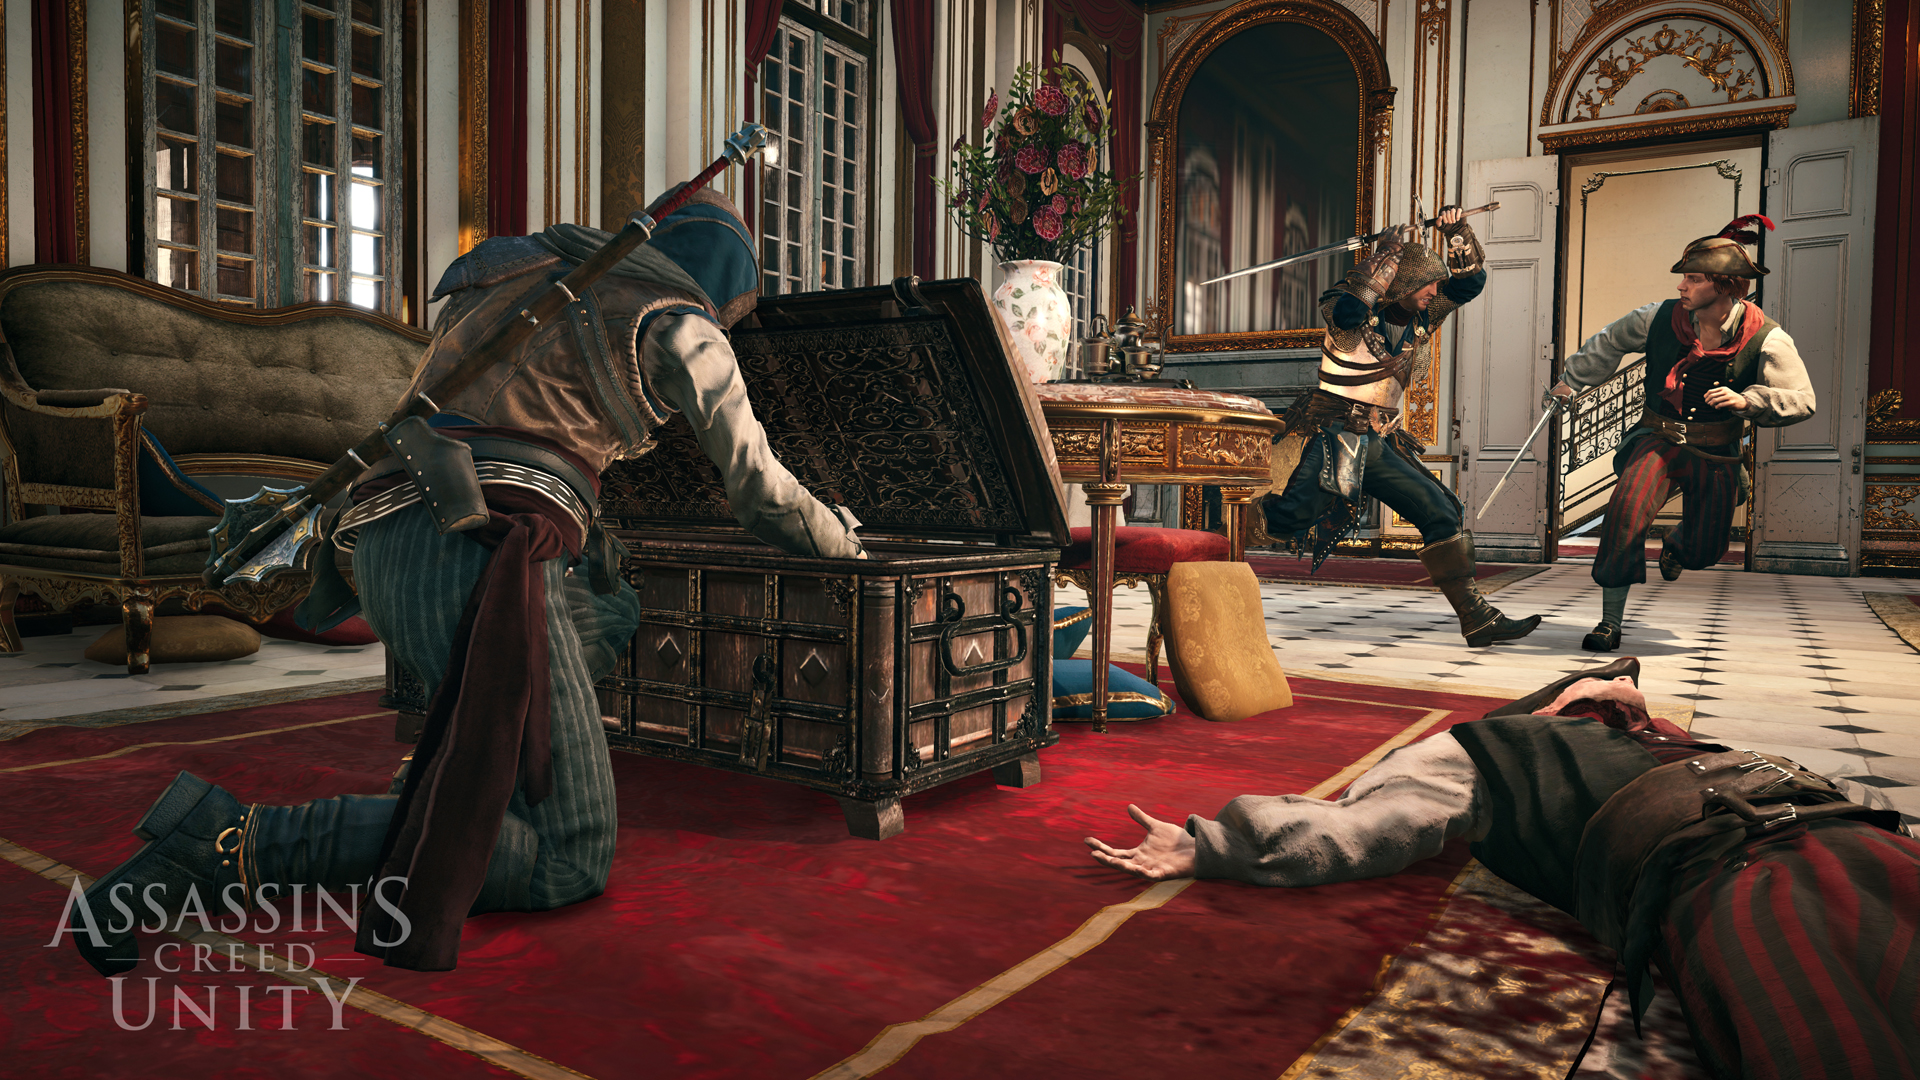 Assassin's Creed Unity Preview - Hands-On With Co-Op